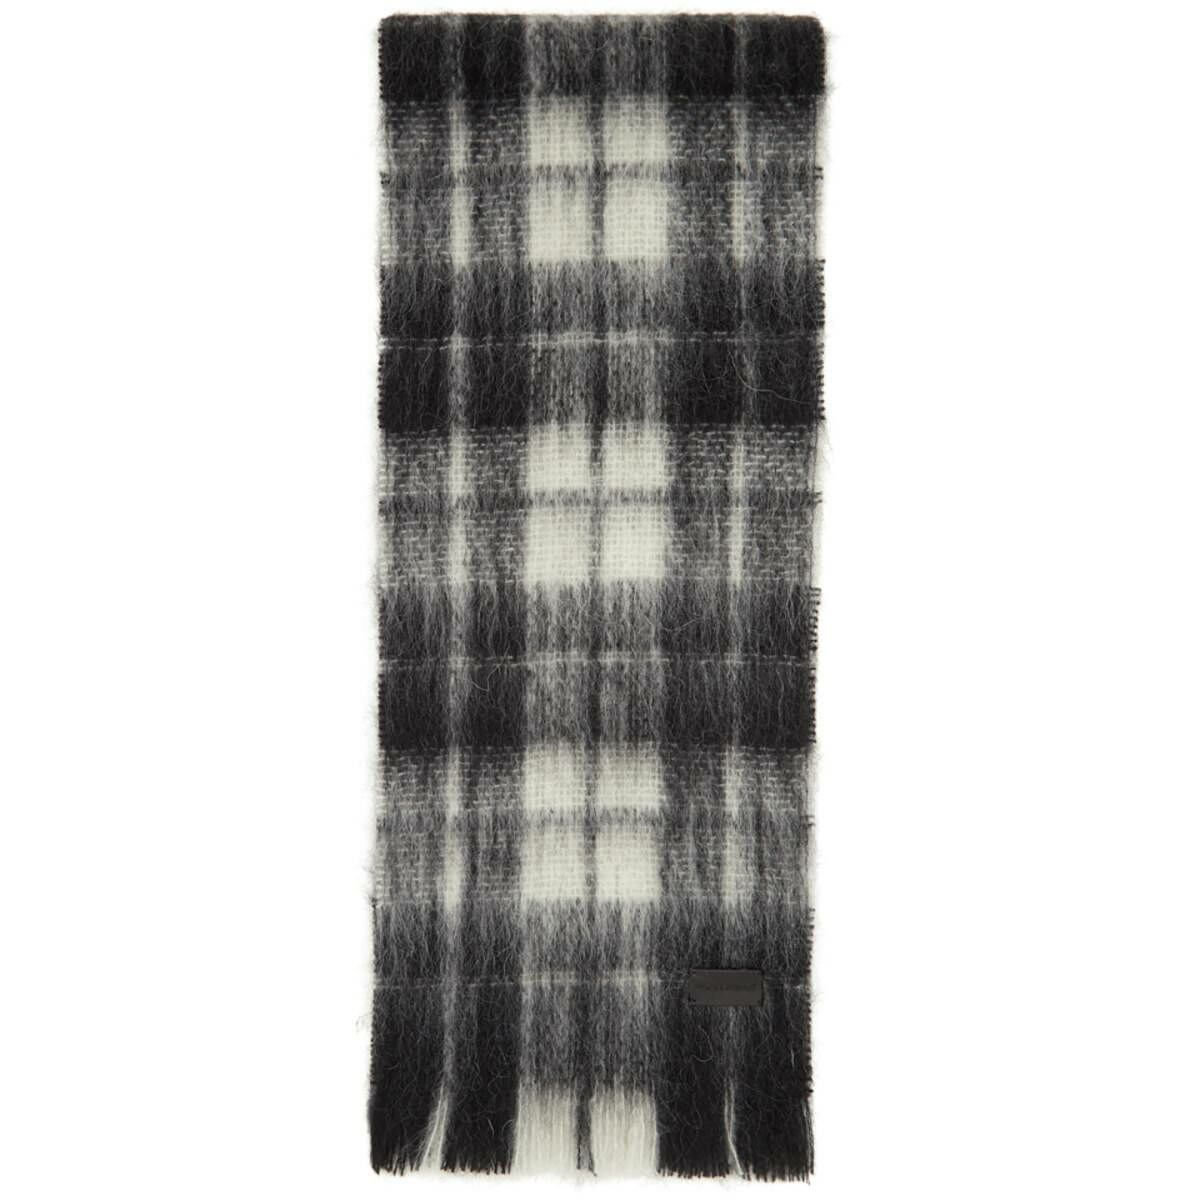 Saint Laurent Black and White Tartan Small Scarf Ssense USA MEN Men ACCESSORIES Mens SCARFS